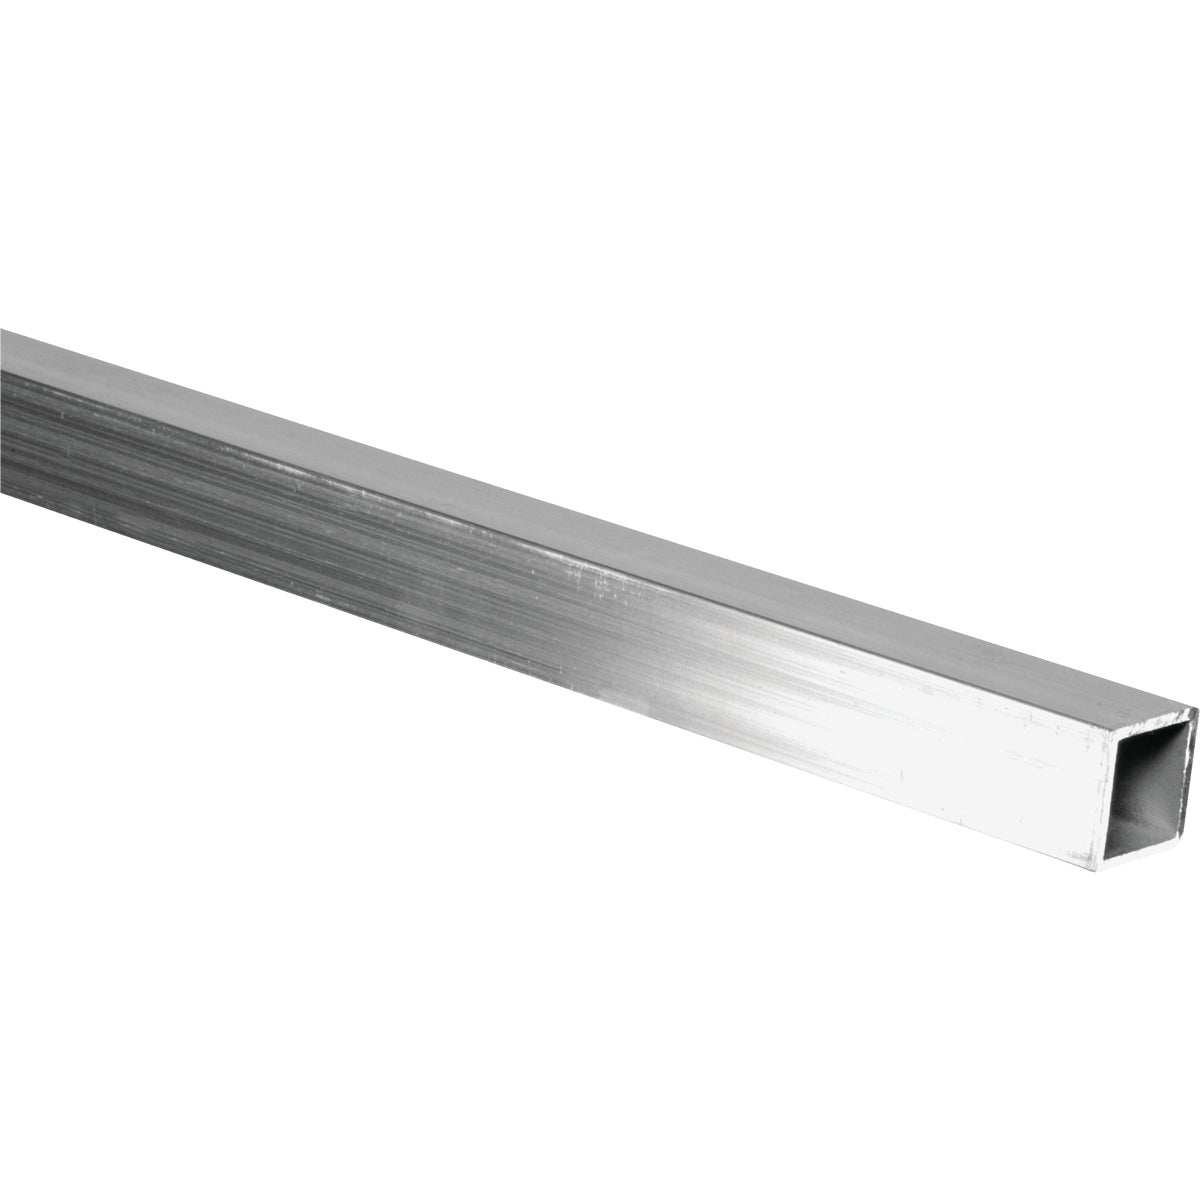 1X8' ALUM SQUARE TUBE - N258509 by National Mfg Co